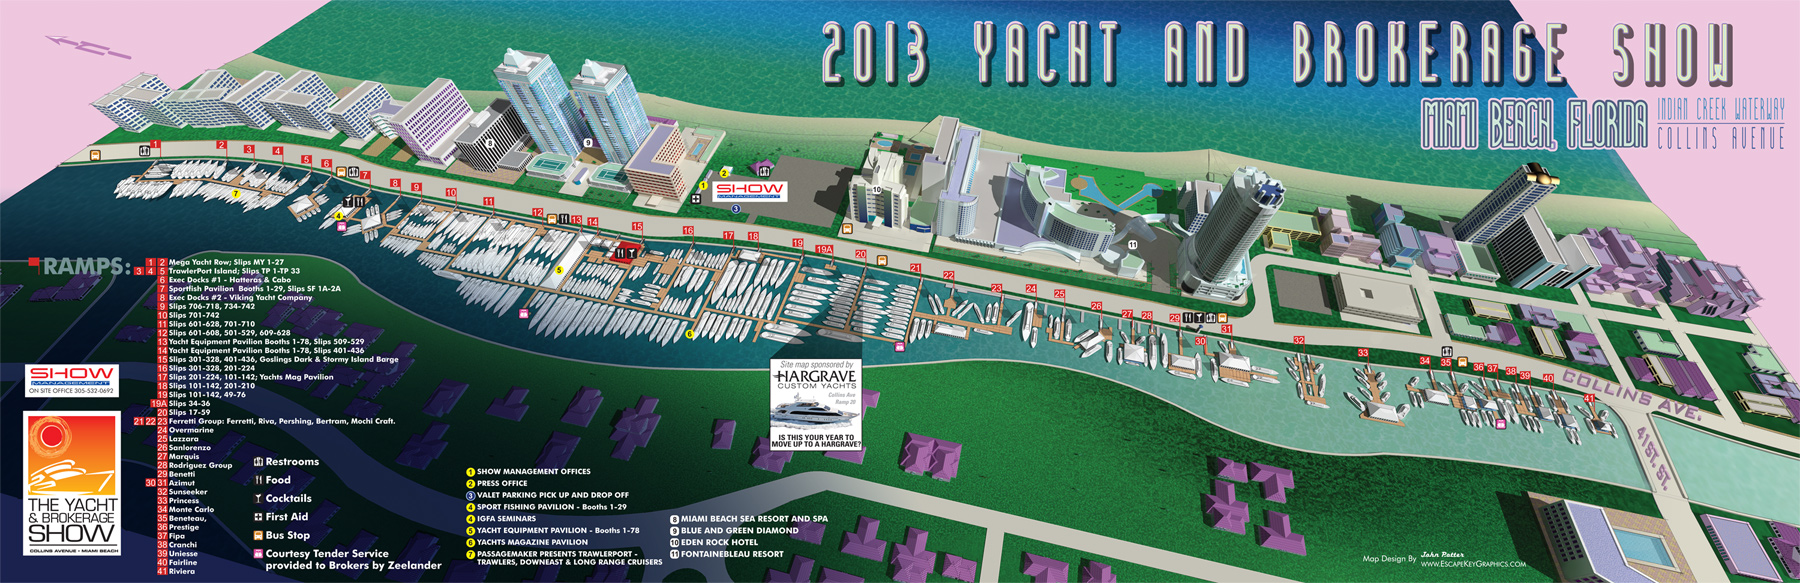 Miami Yacht and Brokerage Show in Miami Beach 2013 map